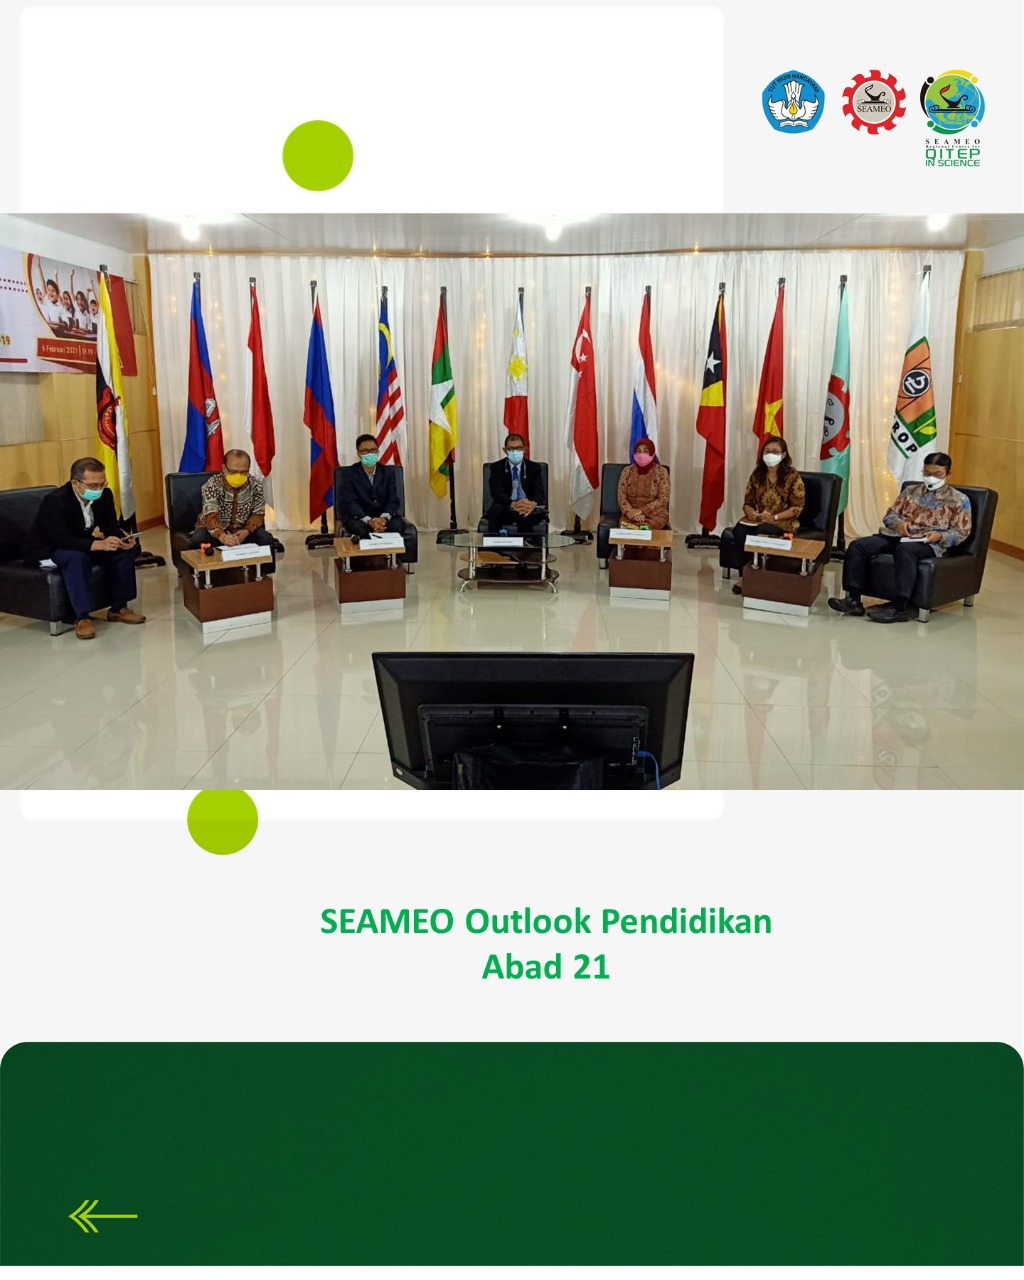 SEAMEO Outlook: The 21st-Century Education